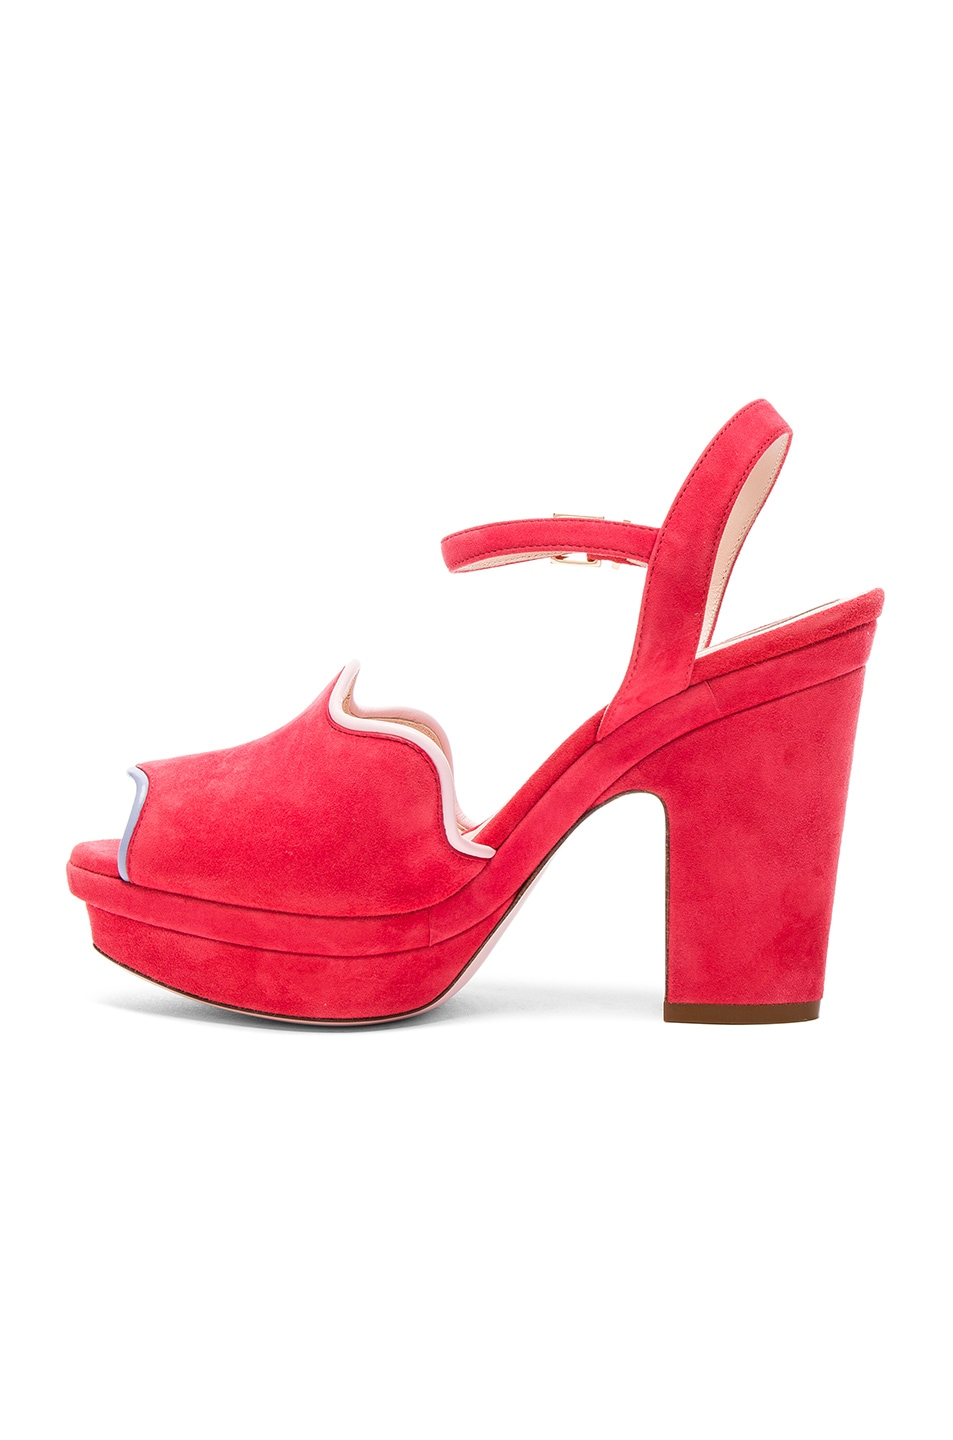 ankle strap sandals - Red Fendi Clearance Store Sale Online grcg7